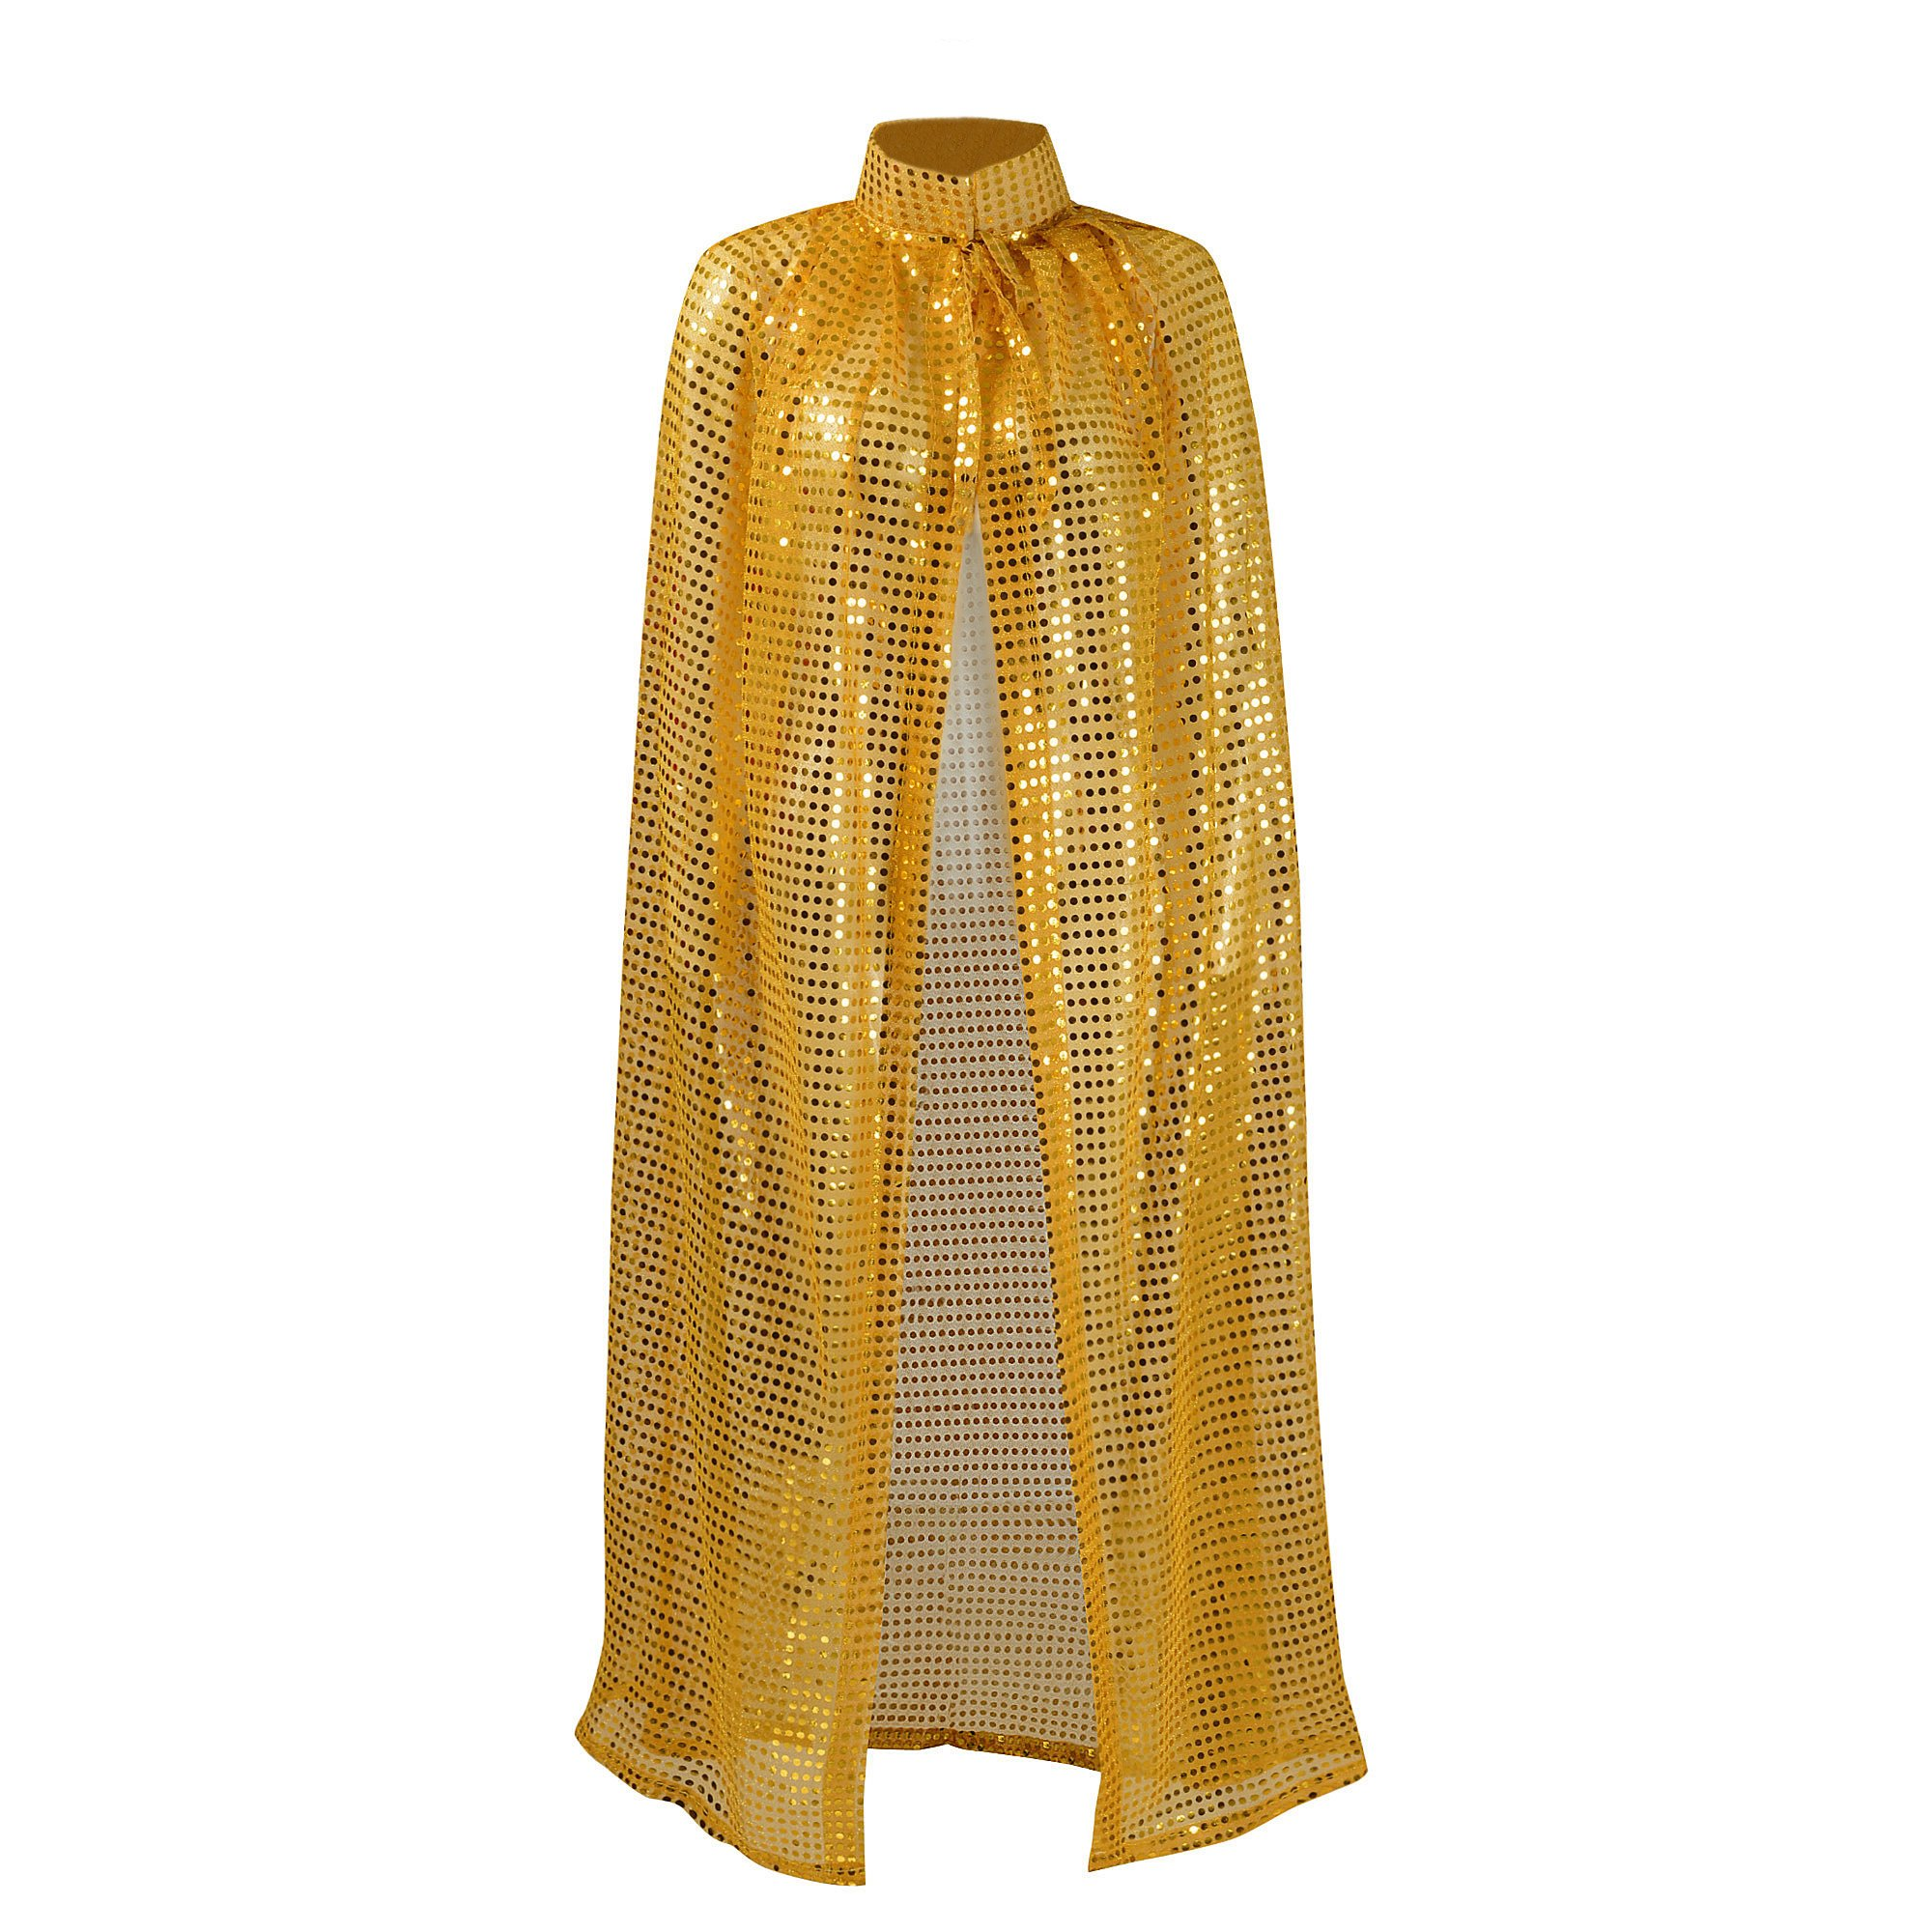 Ladies Cloaks Full Length Colored Sequins Goddess Cape Halloween Christmas Outerwear (Gold)